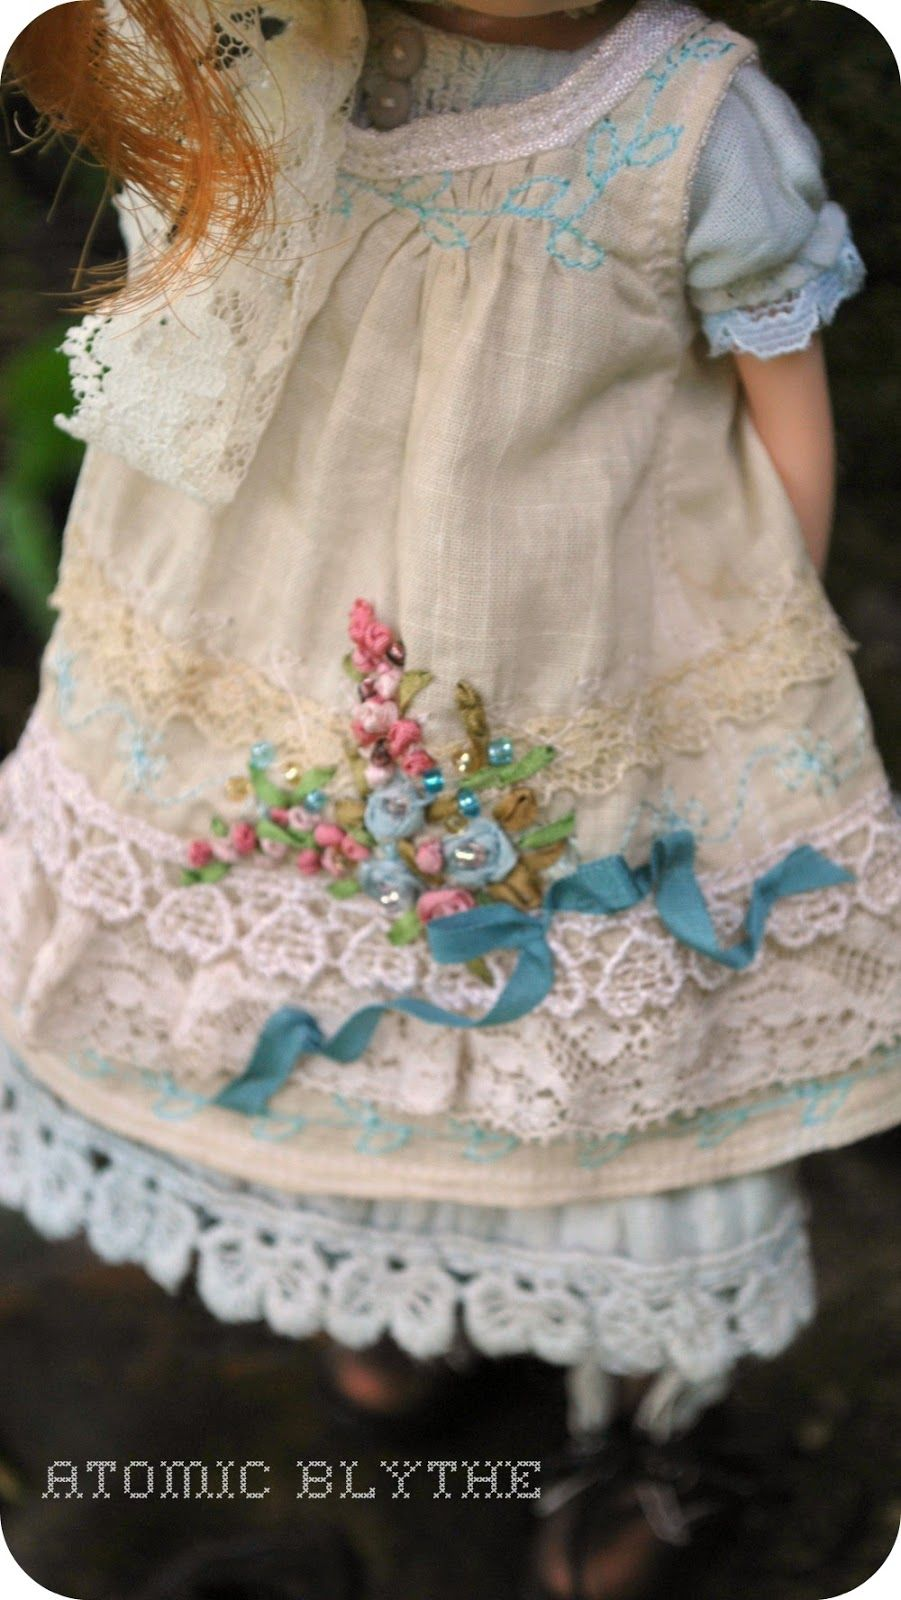 Atomic Blythe Couture What a little piece of work this is!